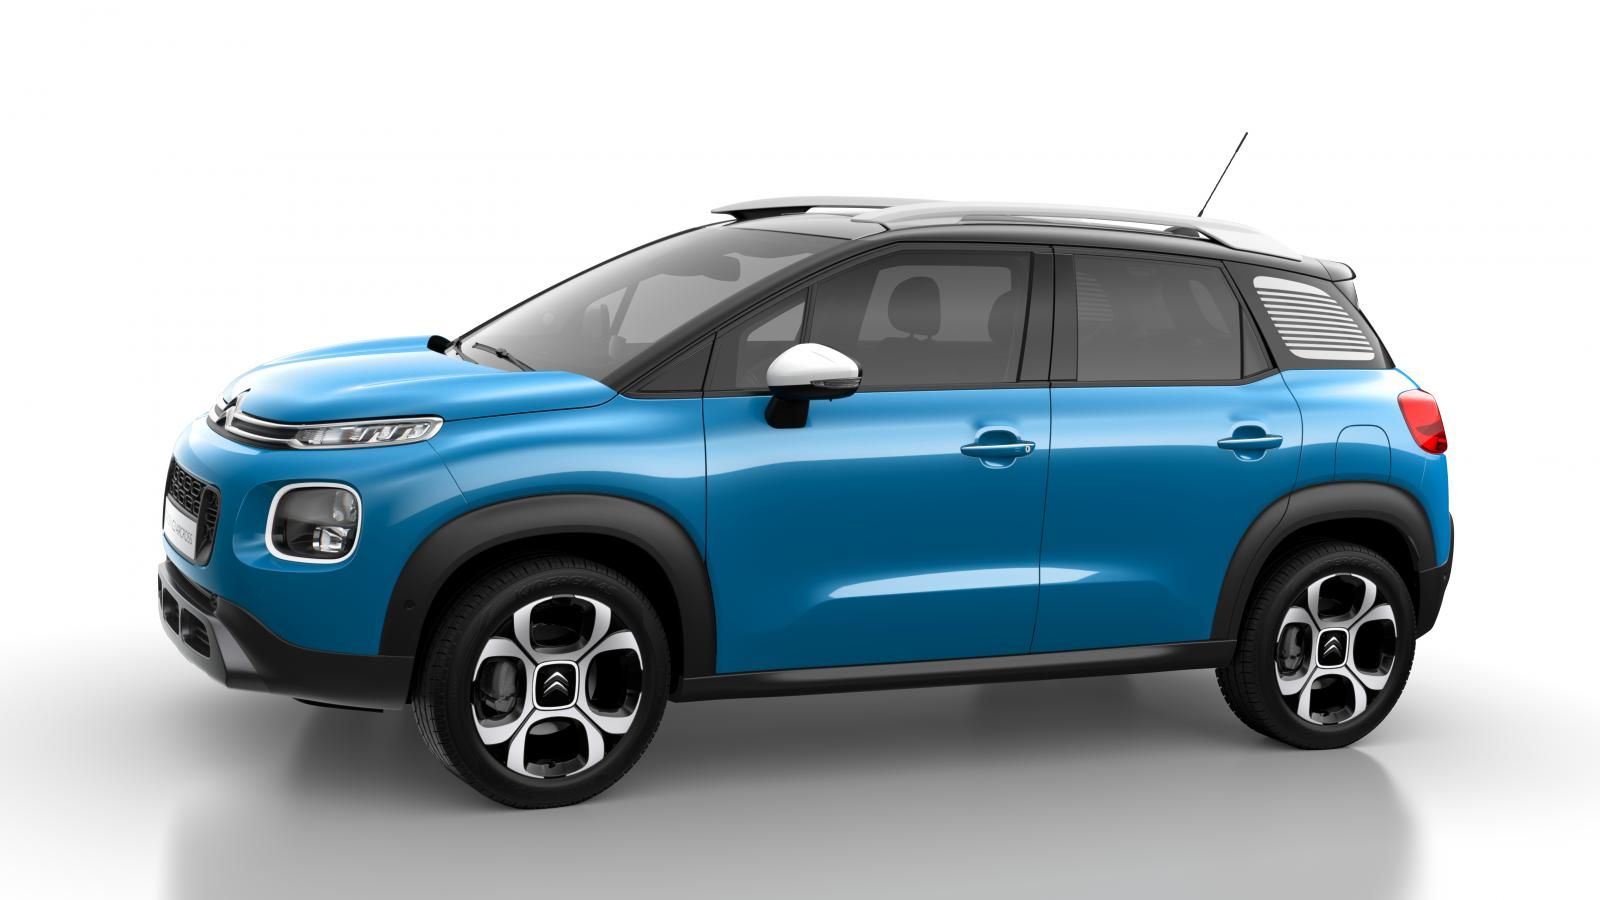 C3 Aircross Compact SUVs - Breathing Blue